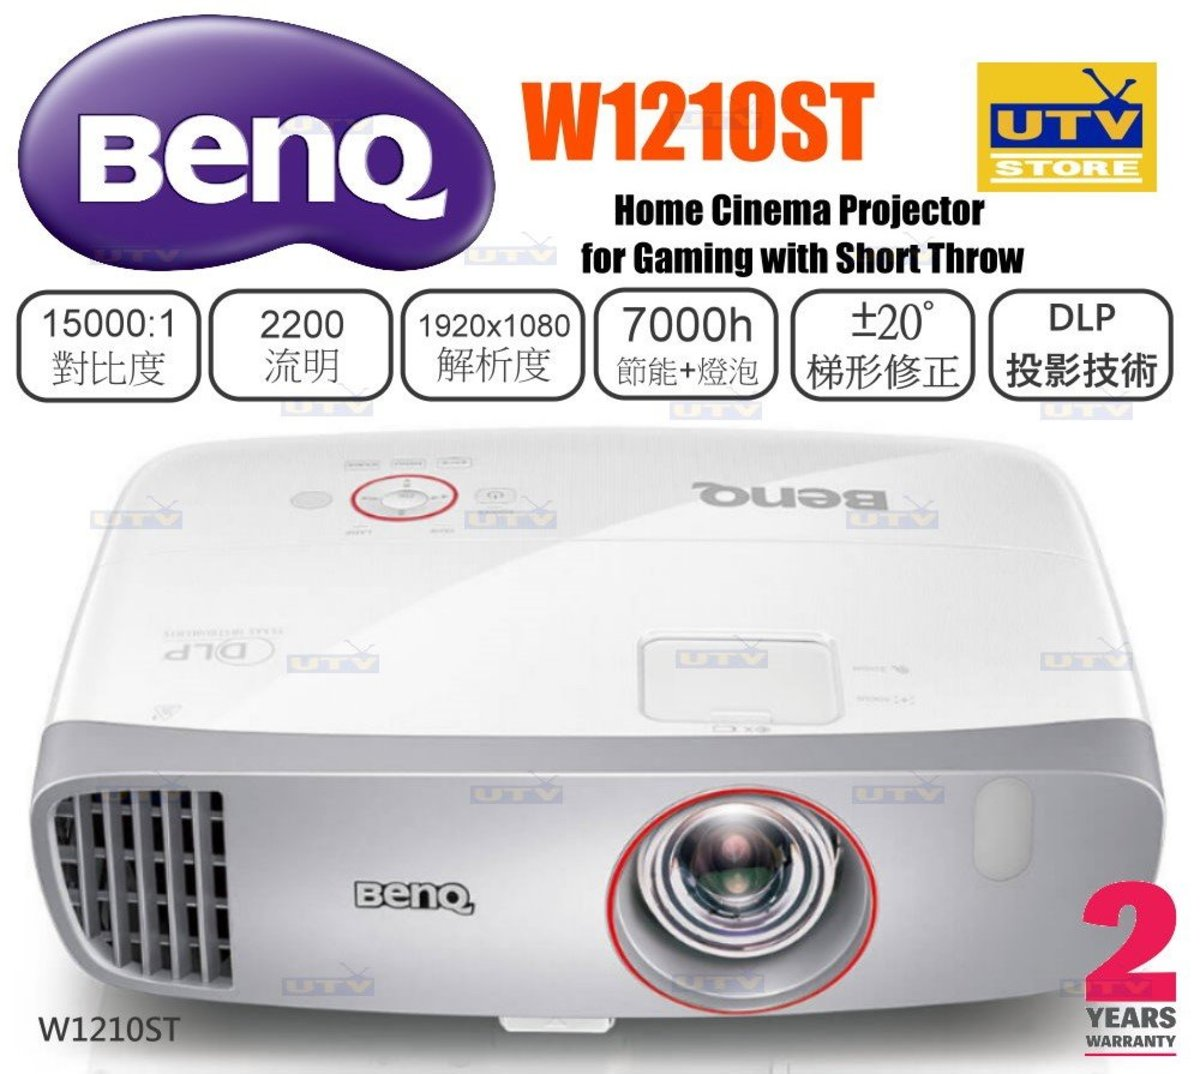 W1210ST Home Cinema Projector for Gaming with Short Throw